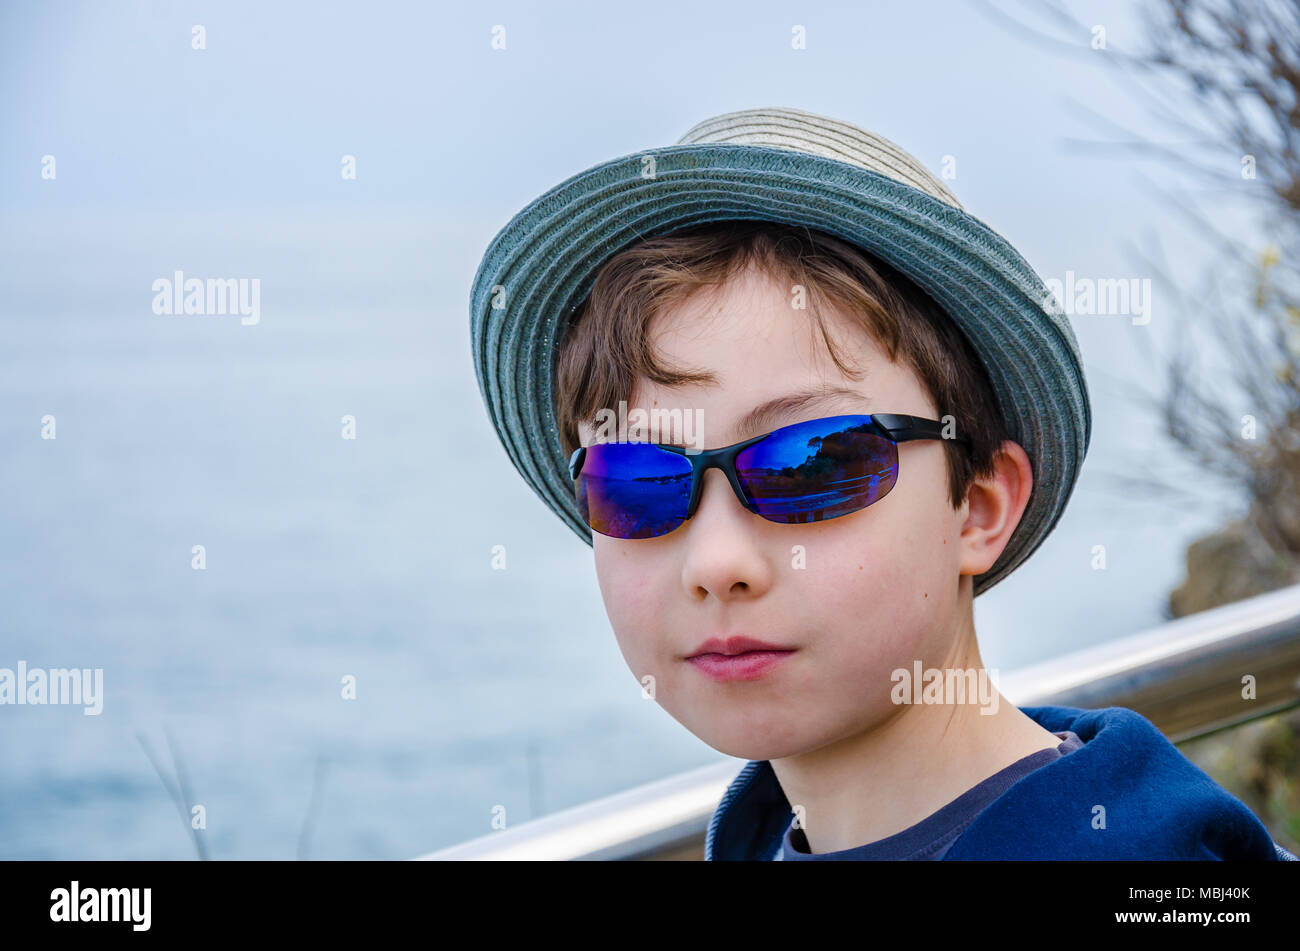 2abf3a80a24c Boy Wearing Sunglasses Stock Photos & Boy Wearing Sunglasses Stock ...